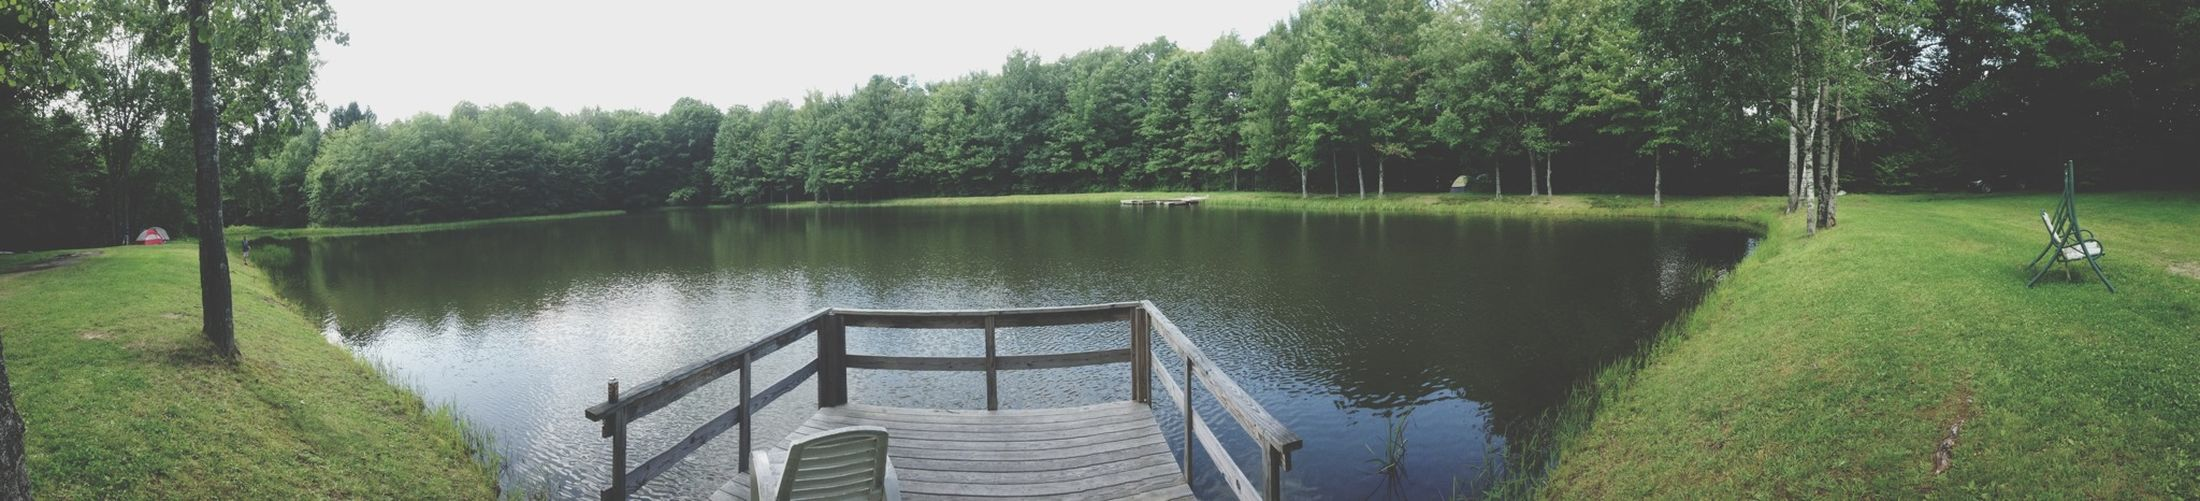 Camping Pond Nature